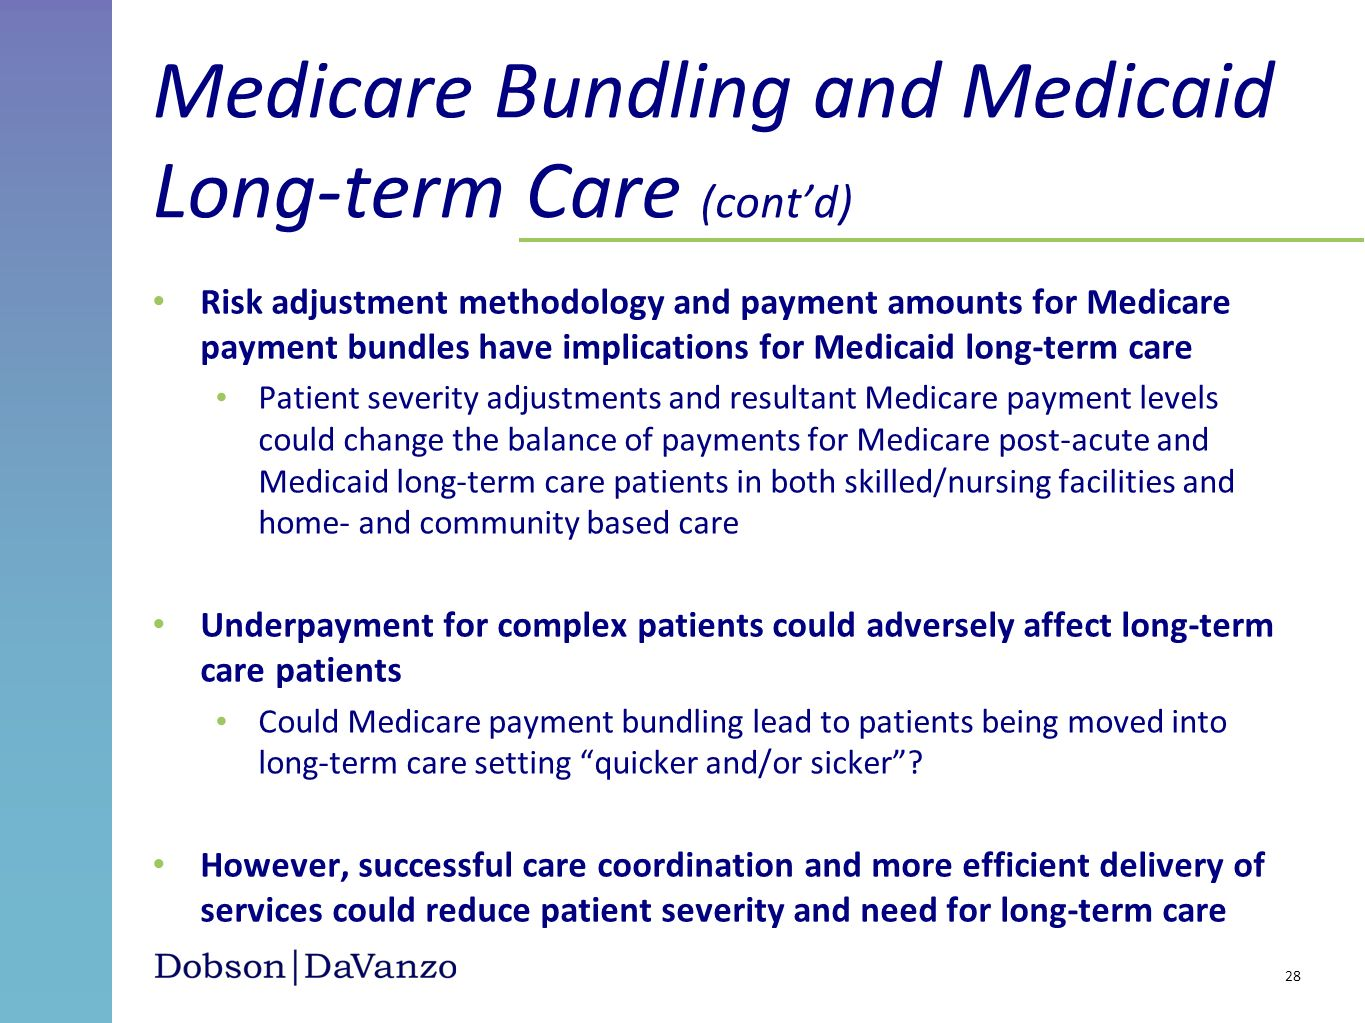 Sample Aca Marketplace Eligibility Review Letter Medicare Bundling And  Medicaid Longterm Care (cont'd) Postacute Care And Longterm Care